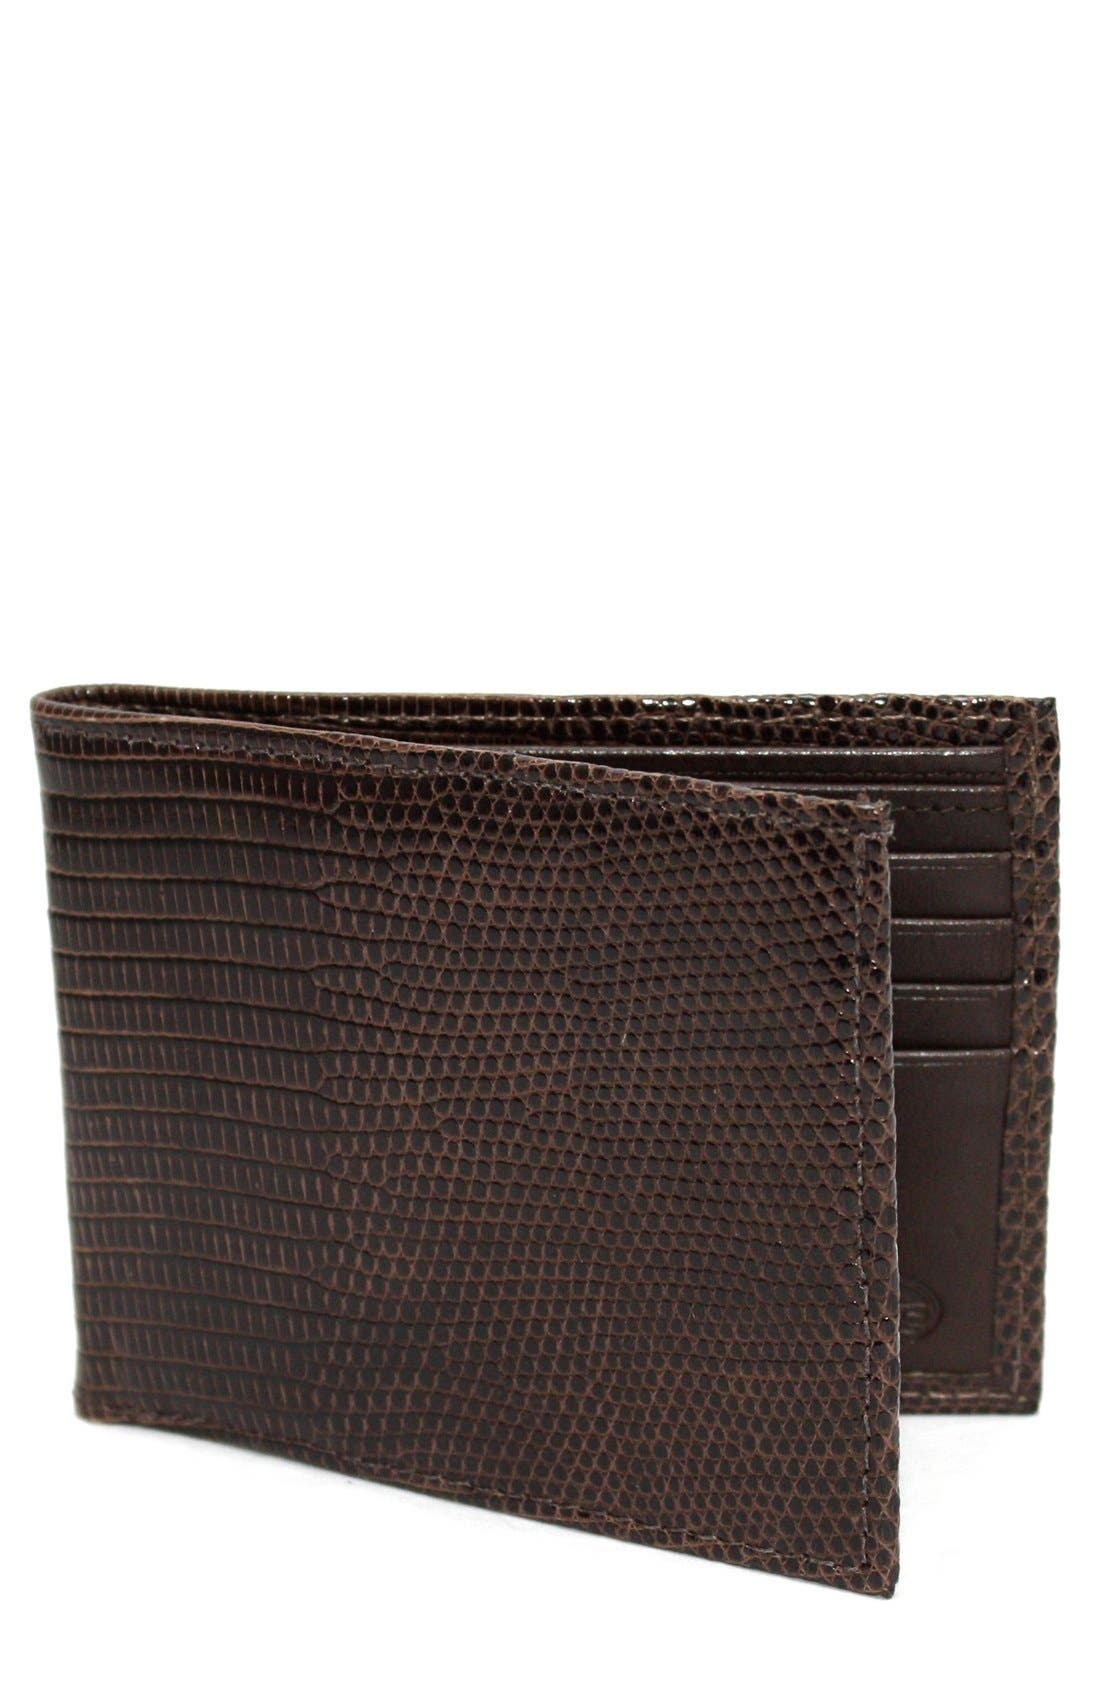 Alternate Image 1 Selected - Torino Belts Genuine Lizard Wallet